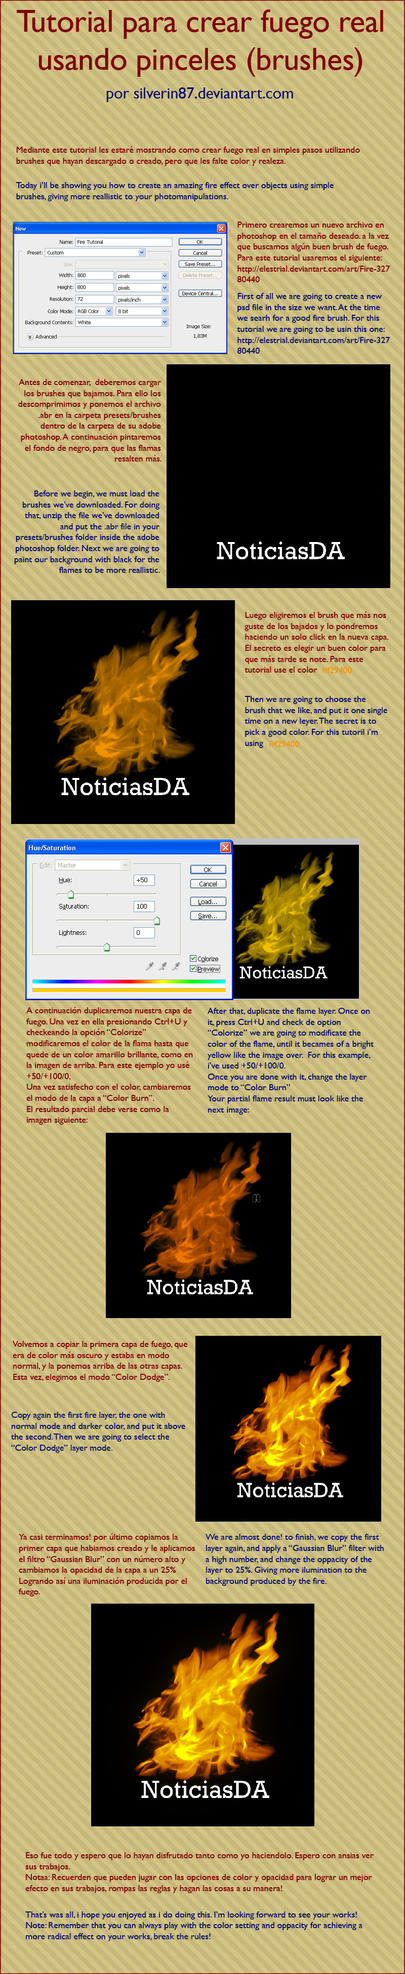 Tutorial Crear Flamas en Pshop by noticias